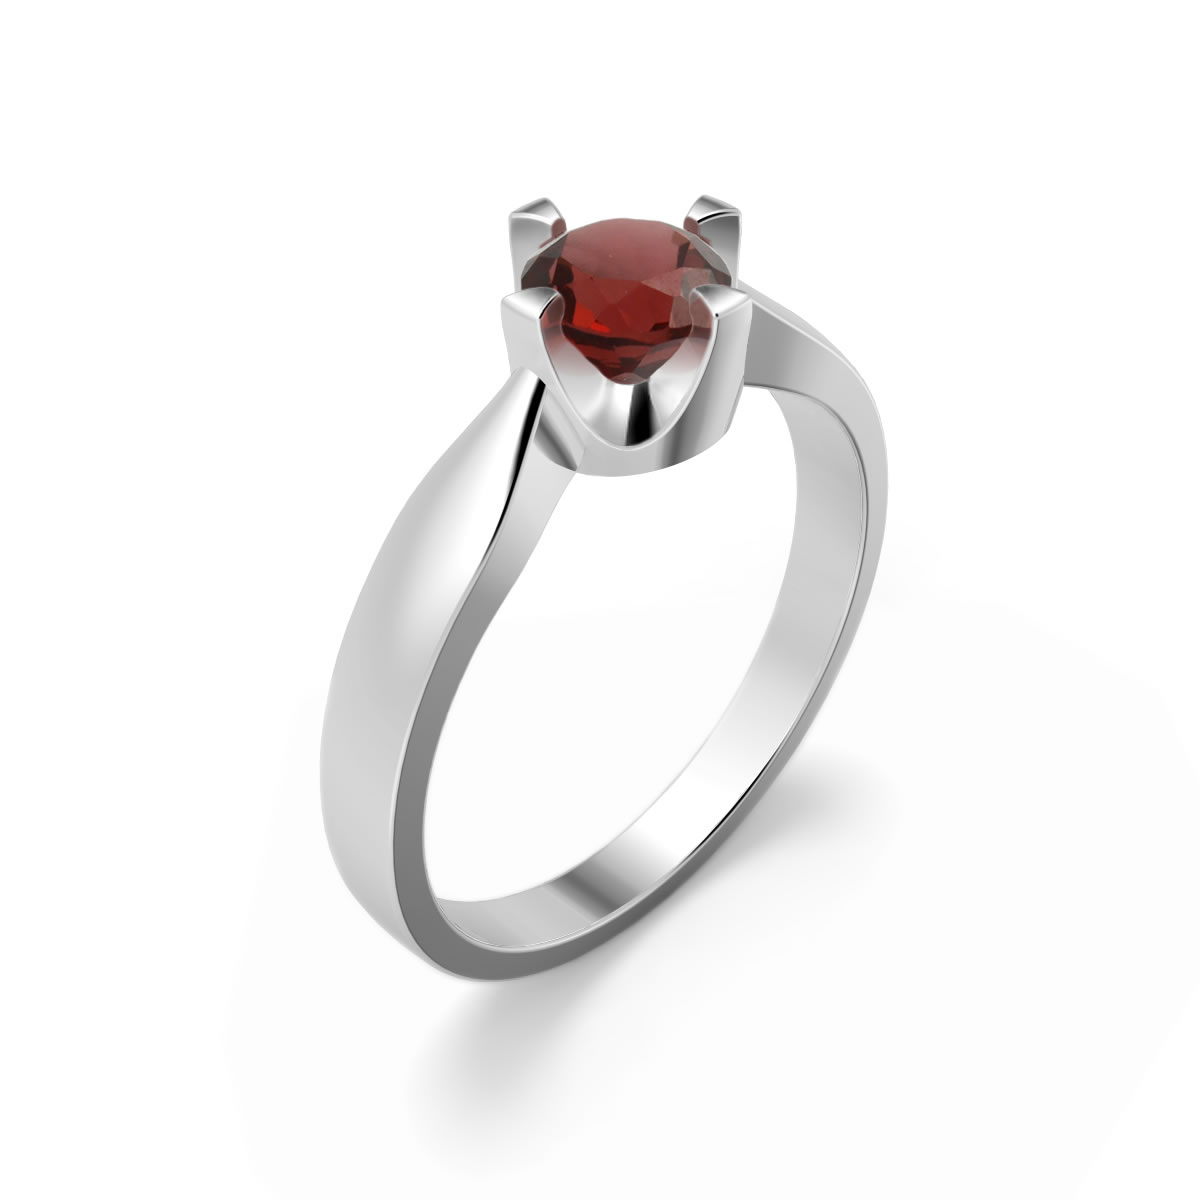 Elegant ring in sterling silver with a garnet